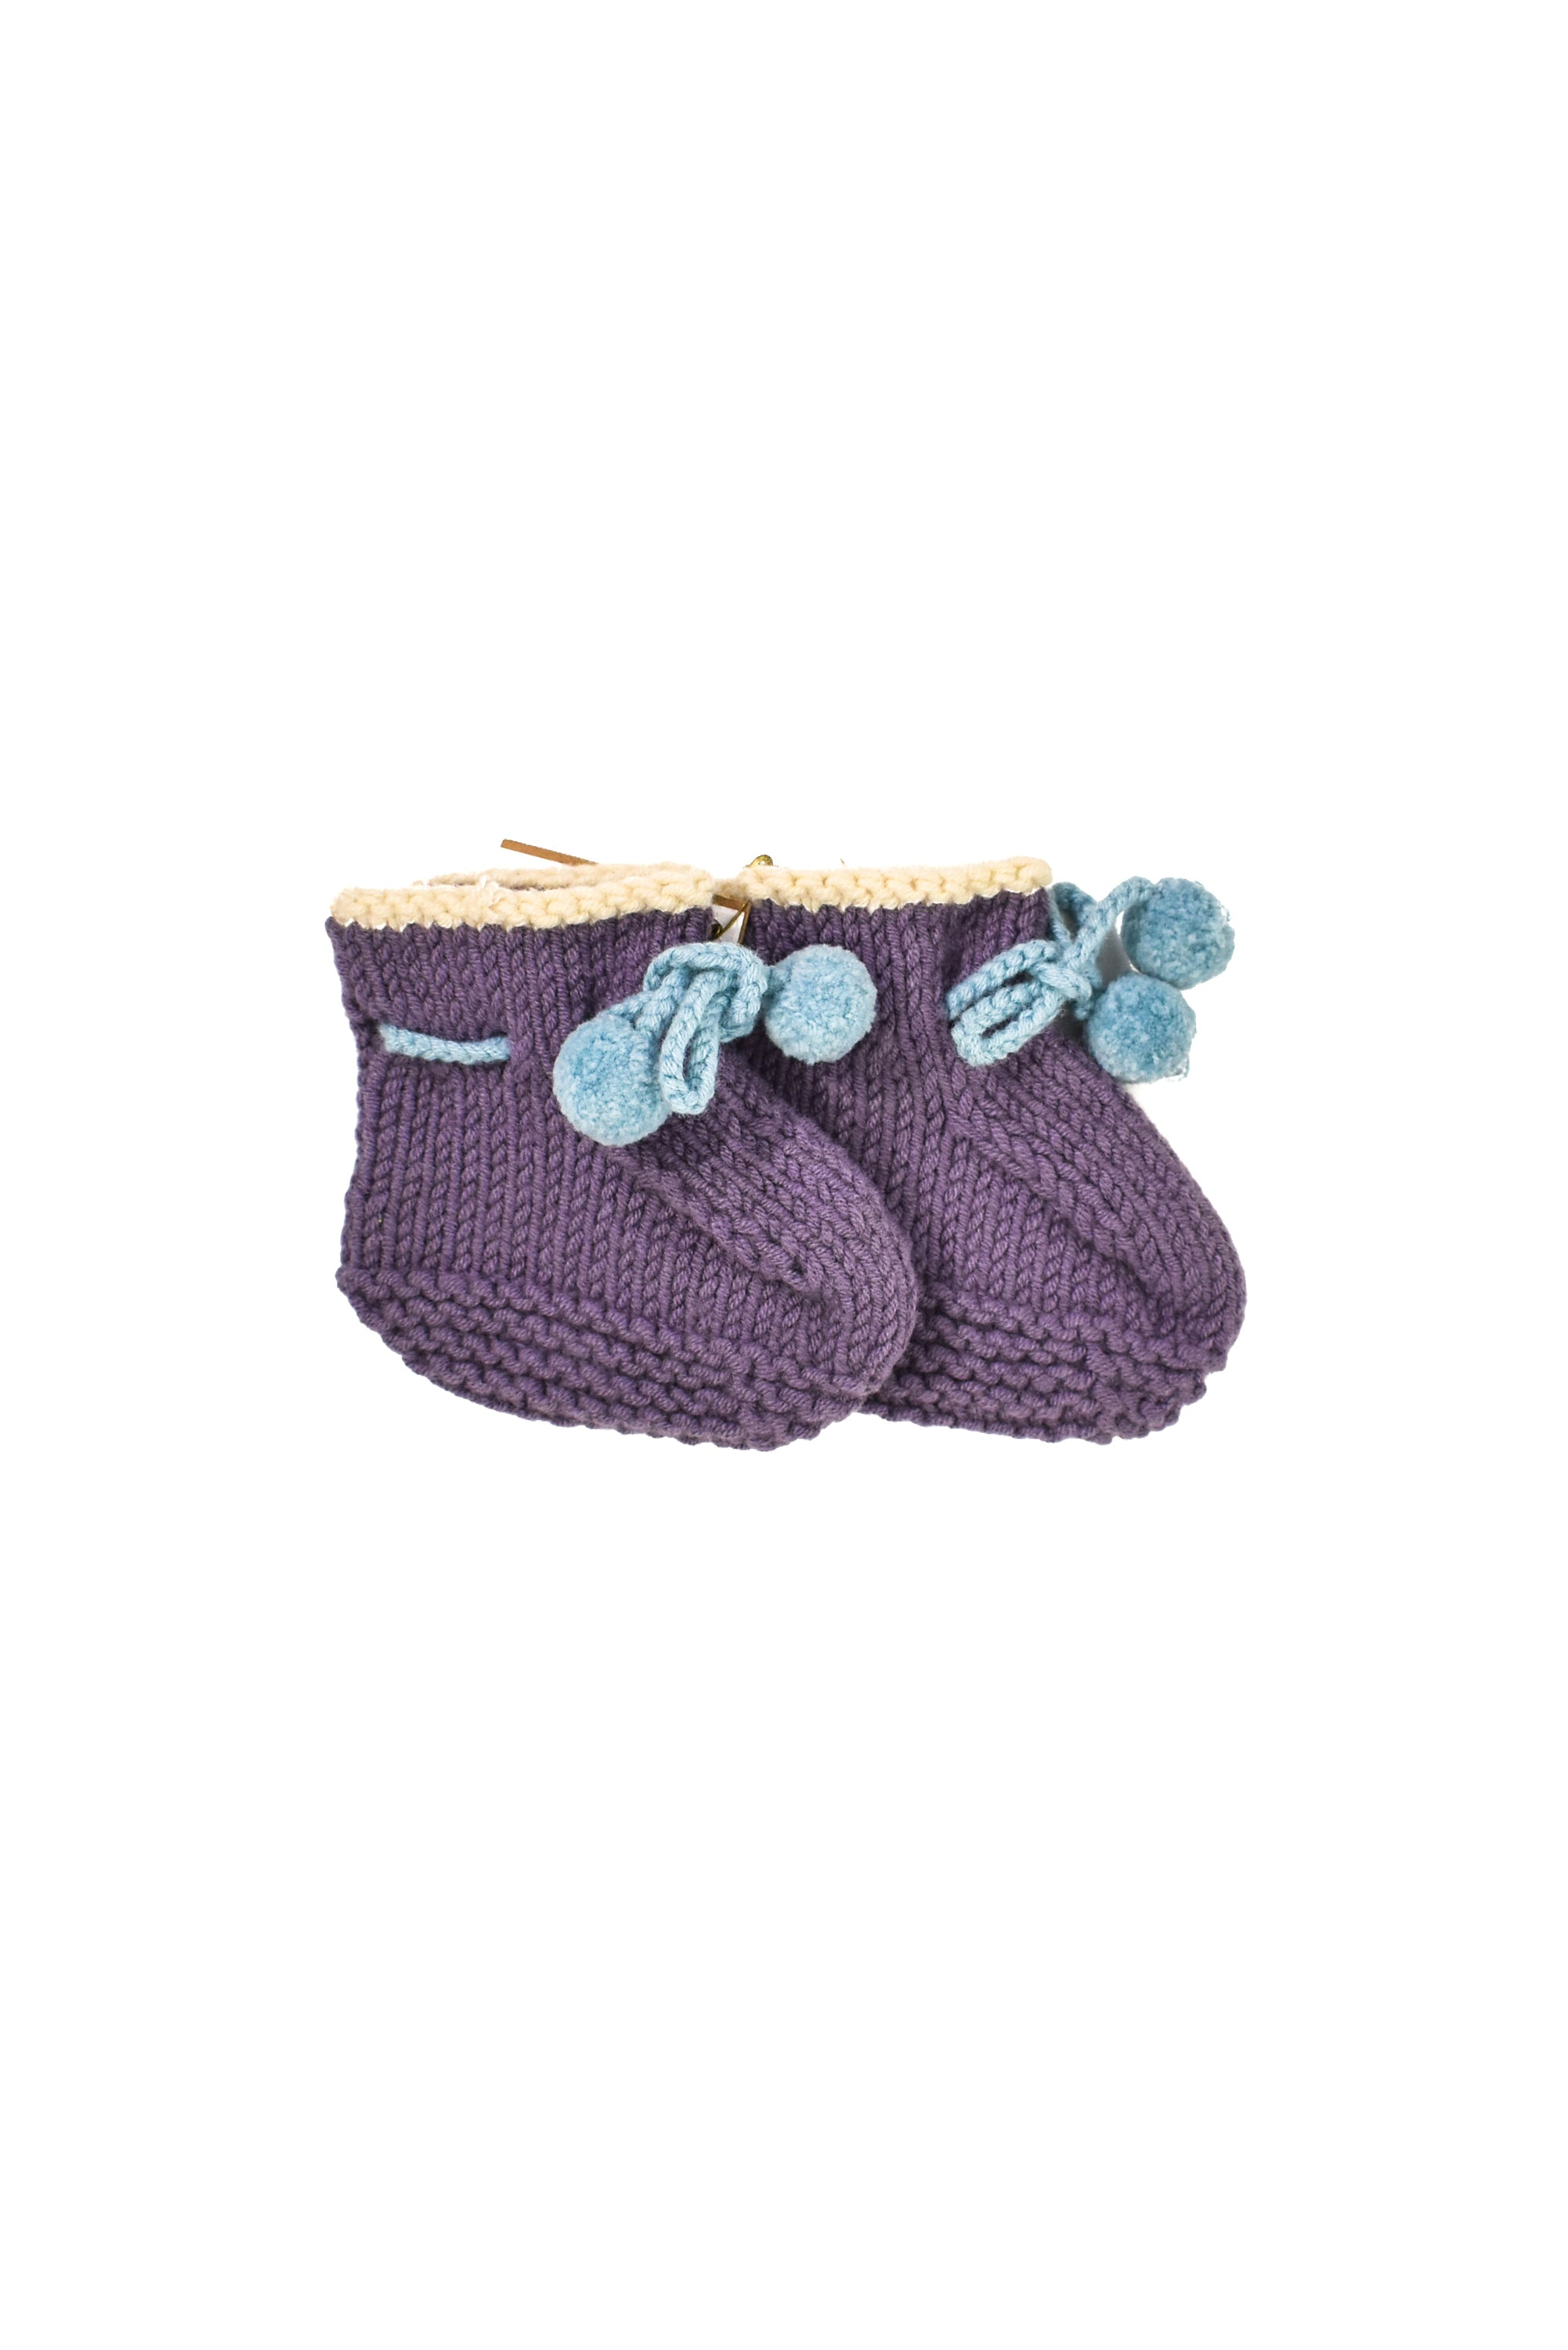 10023157 Shokay Baby~Knitted Shoes 0-6M at Retykle